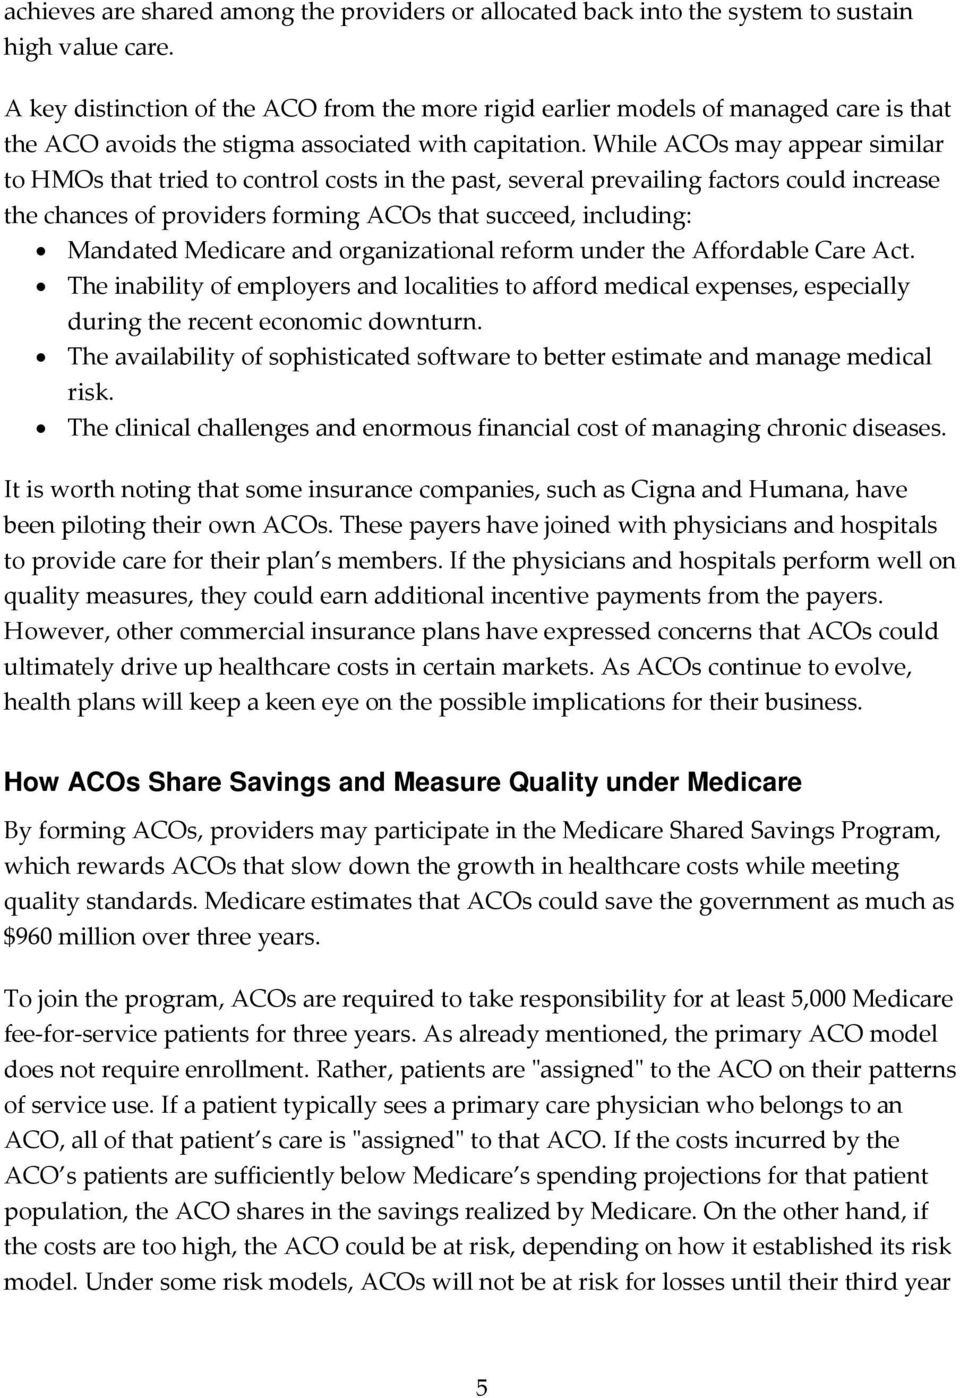 While ACOs may appear similar to HMOs that tried to control costs in the past, several prevailing factors could increase the chances of providers forming ACOs that succeed, including: Mandated